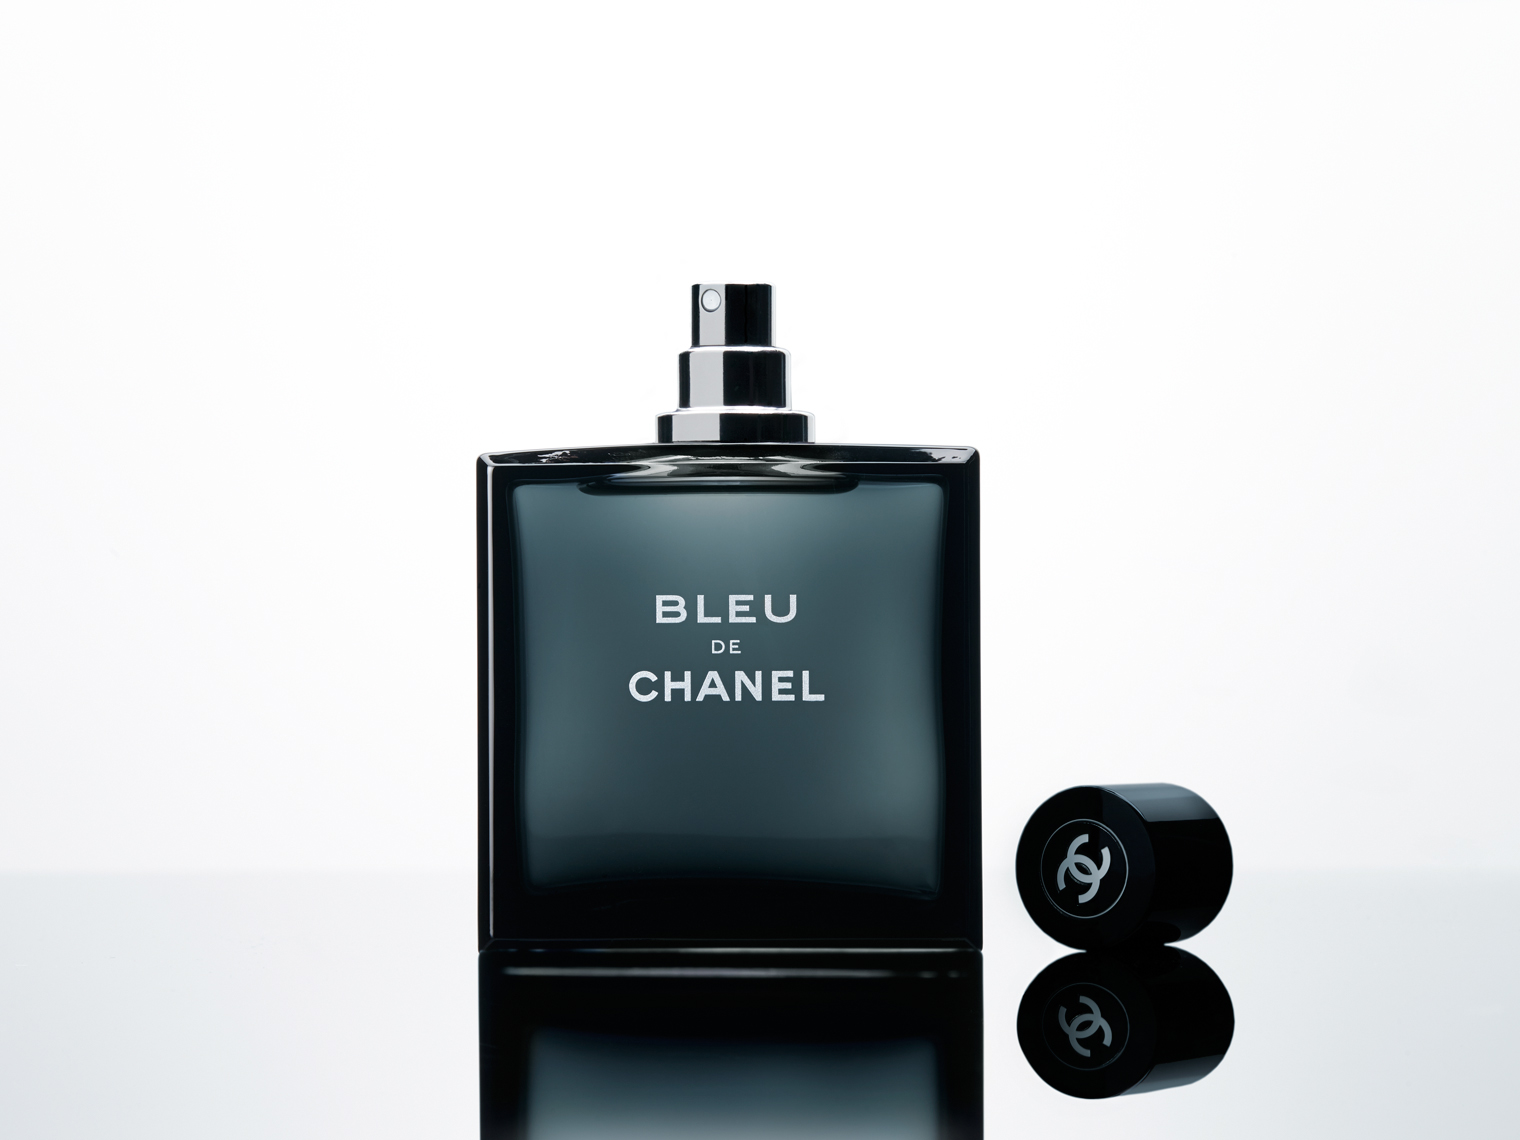 bleu de chanel - still life photographer san francisco